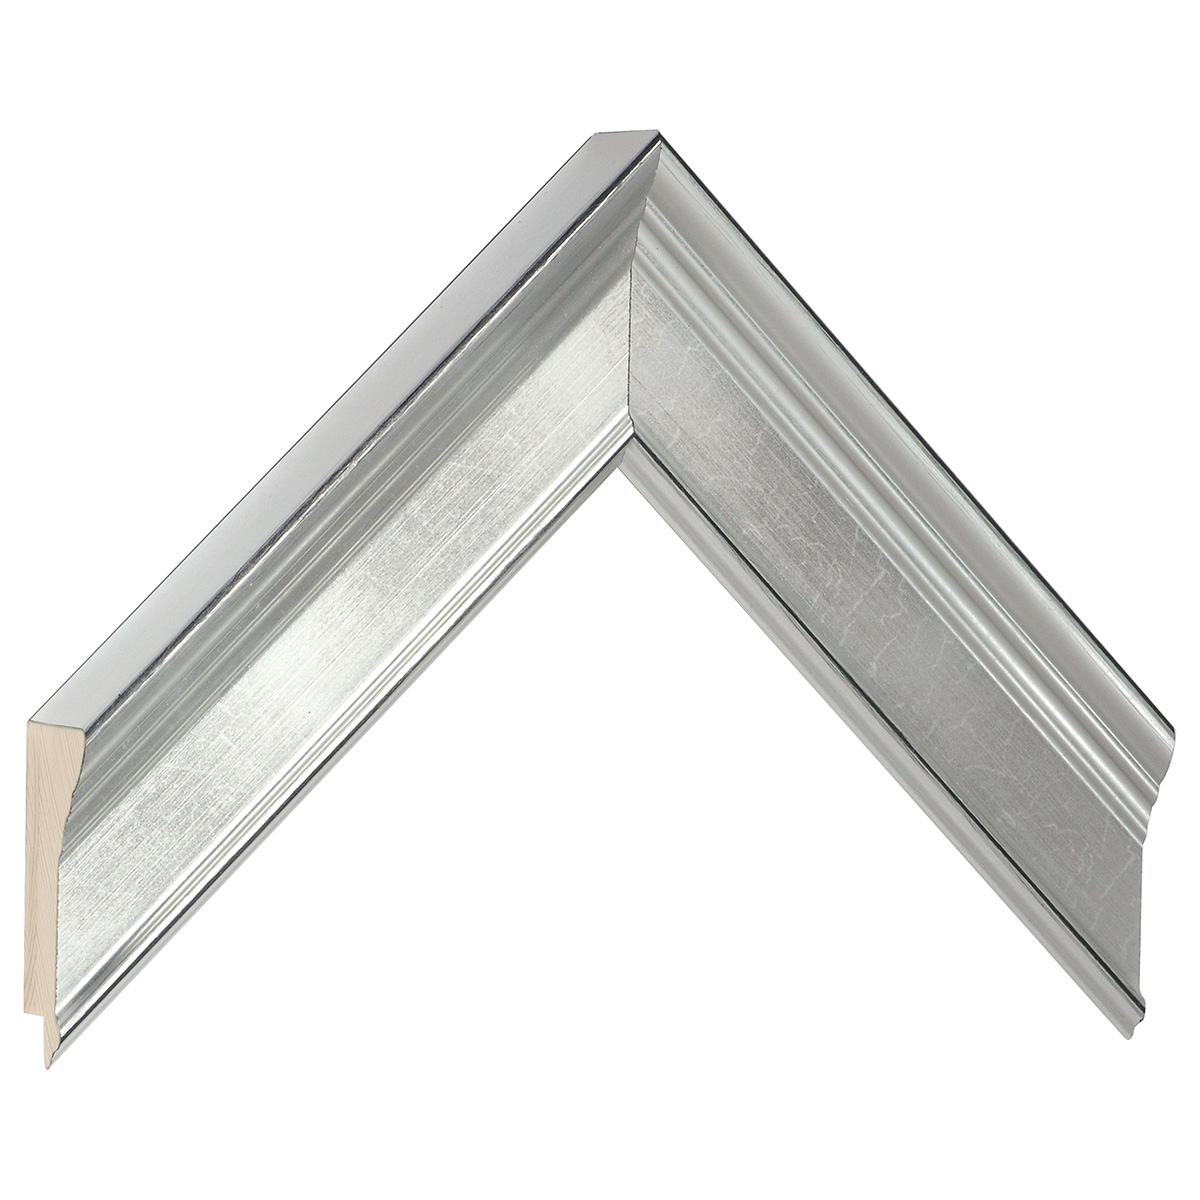 Moulding finger joint pine - width 42mm height 29 - silver